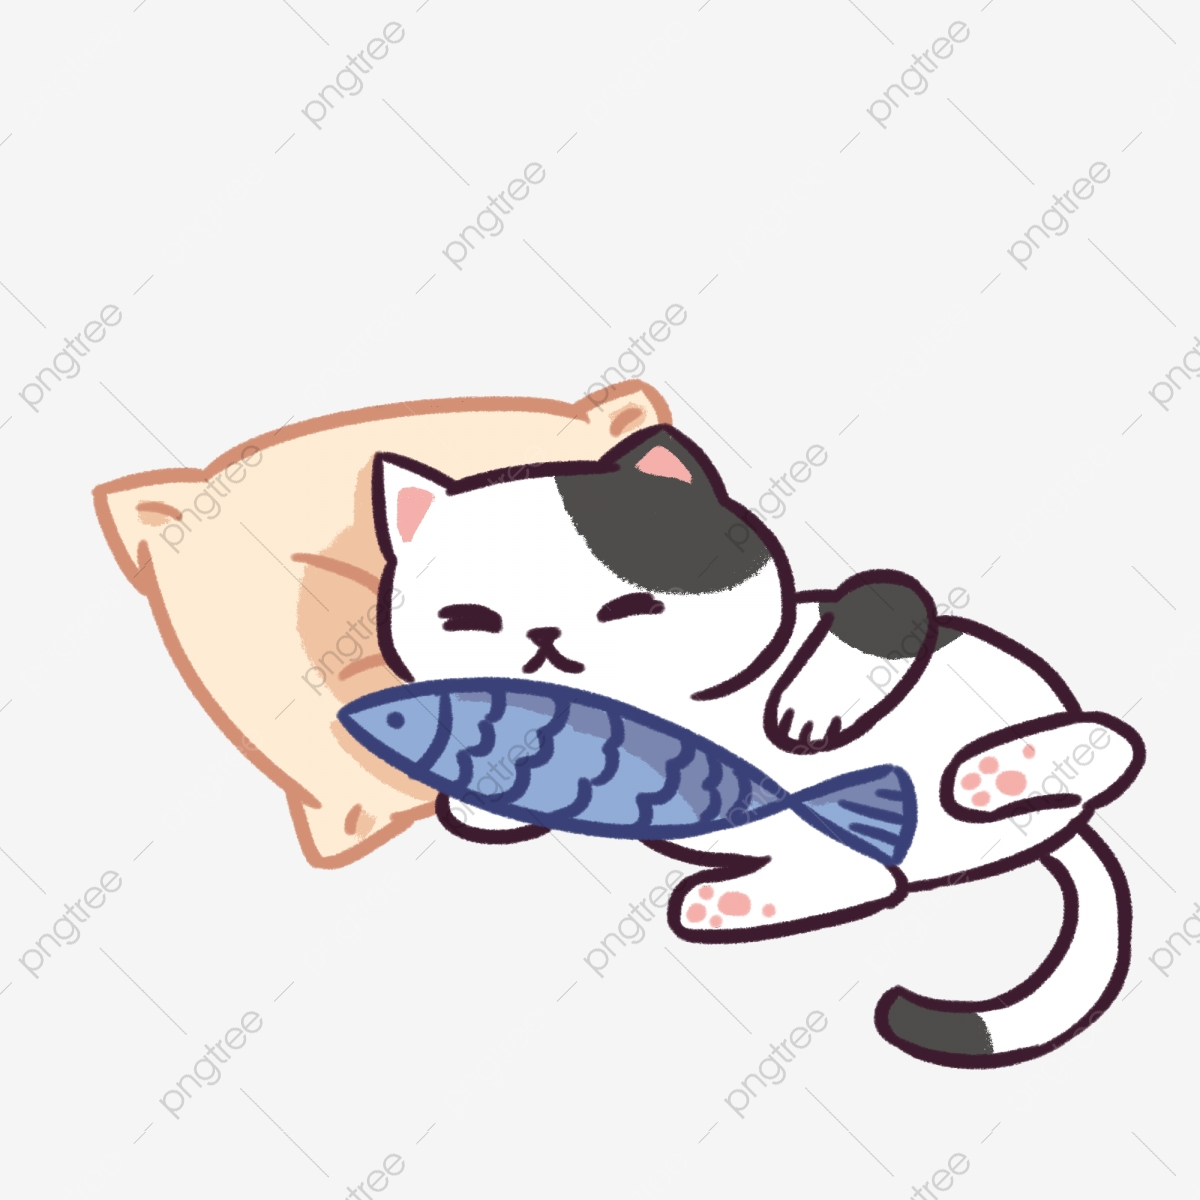 Black And White Sleeping Cat Illustration Sleeping Cat Blue Fish Cartoon Illustration Png Transparent Clipart Image And Psd File For Free Download